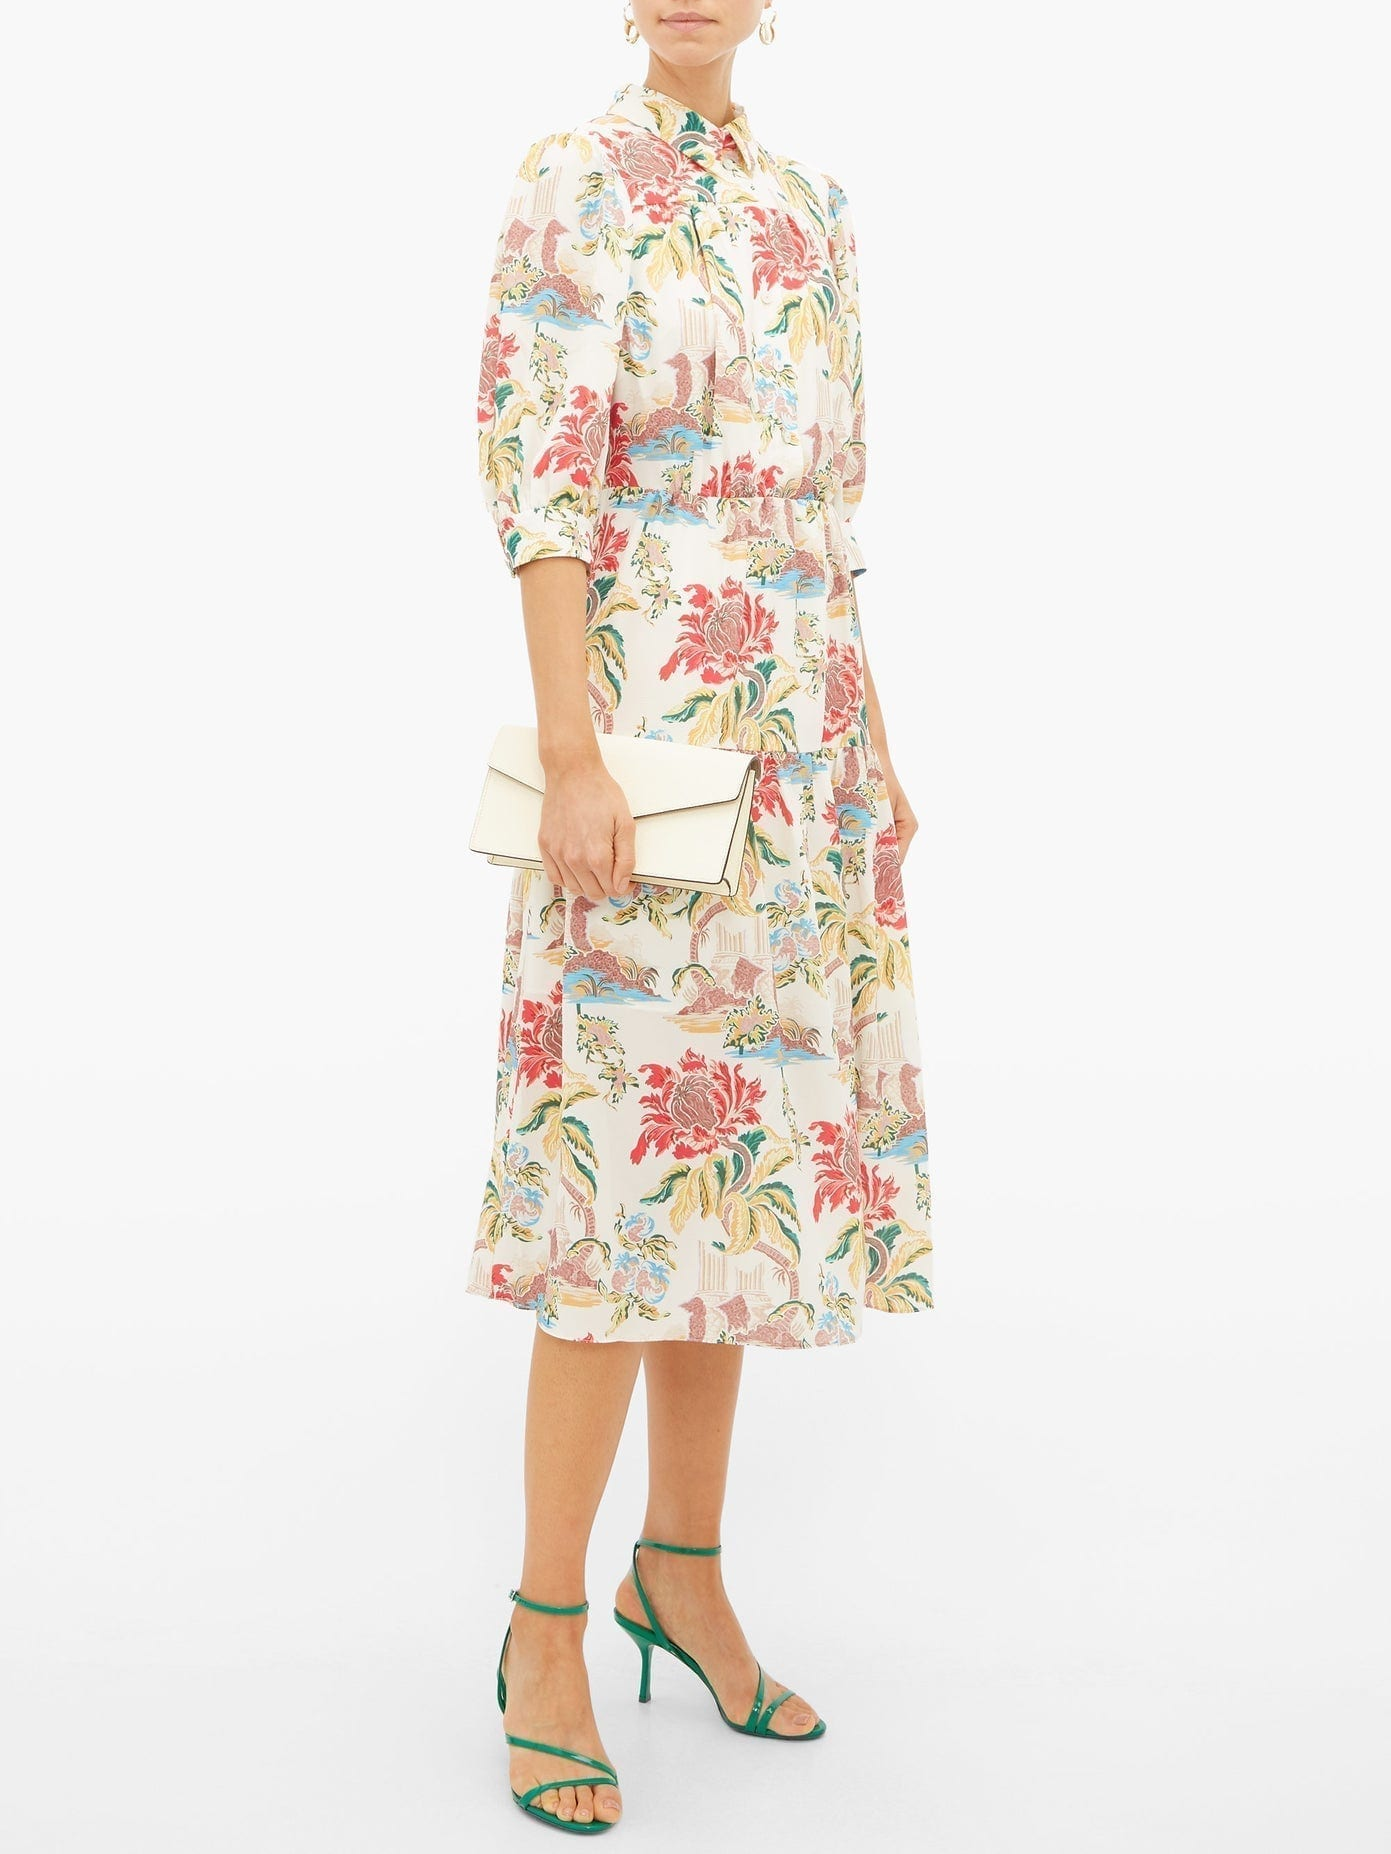 PETER PILOTTO Floral-print Poplin Shirt Dress